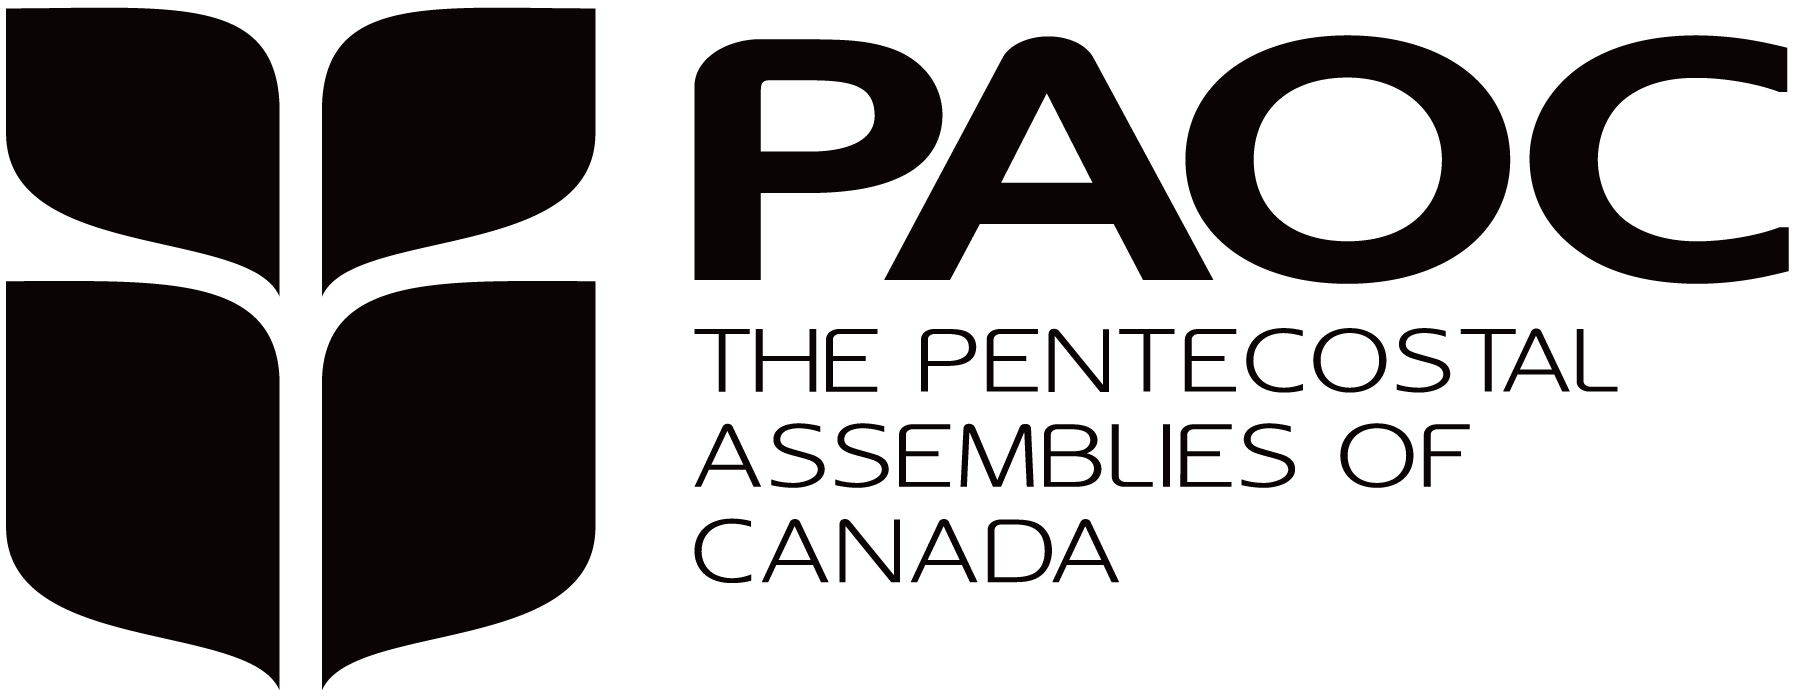 2-9)-paoc-logo-en-transparent-black.png